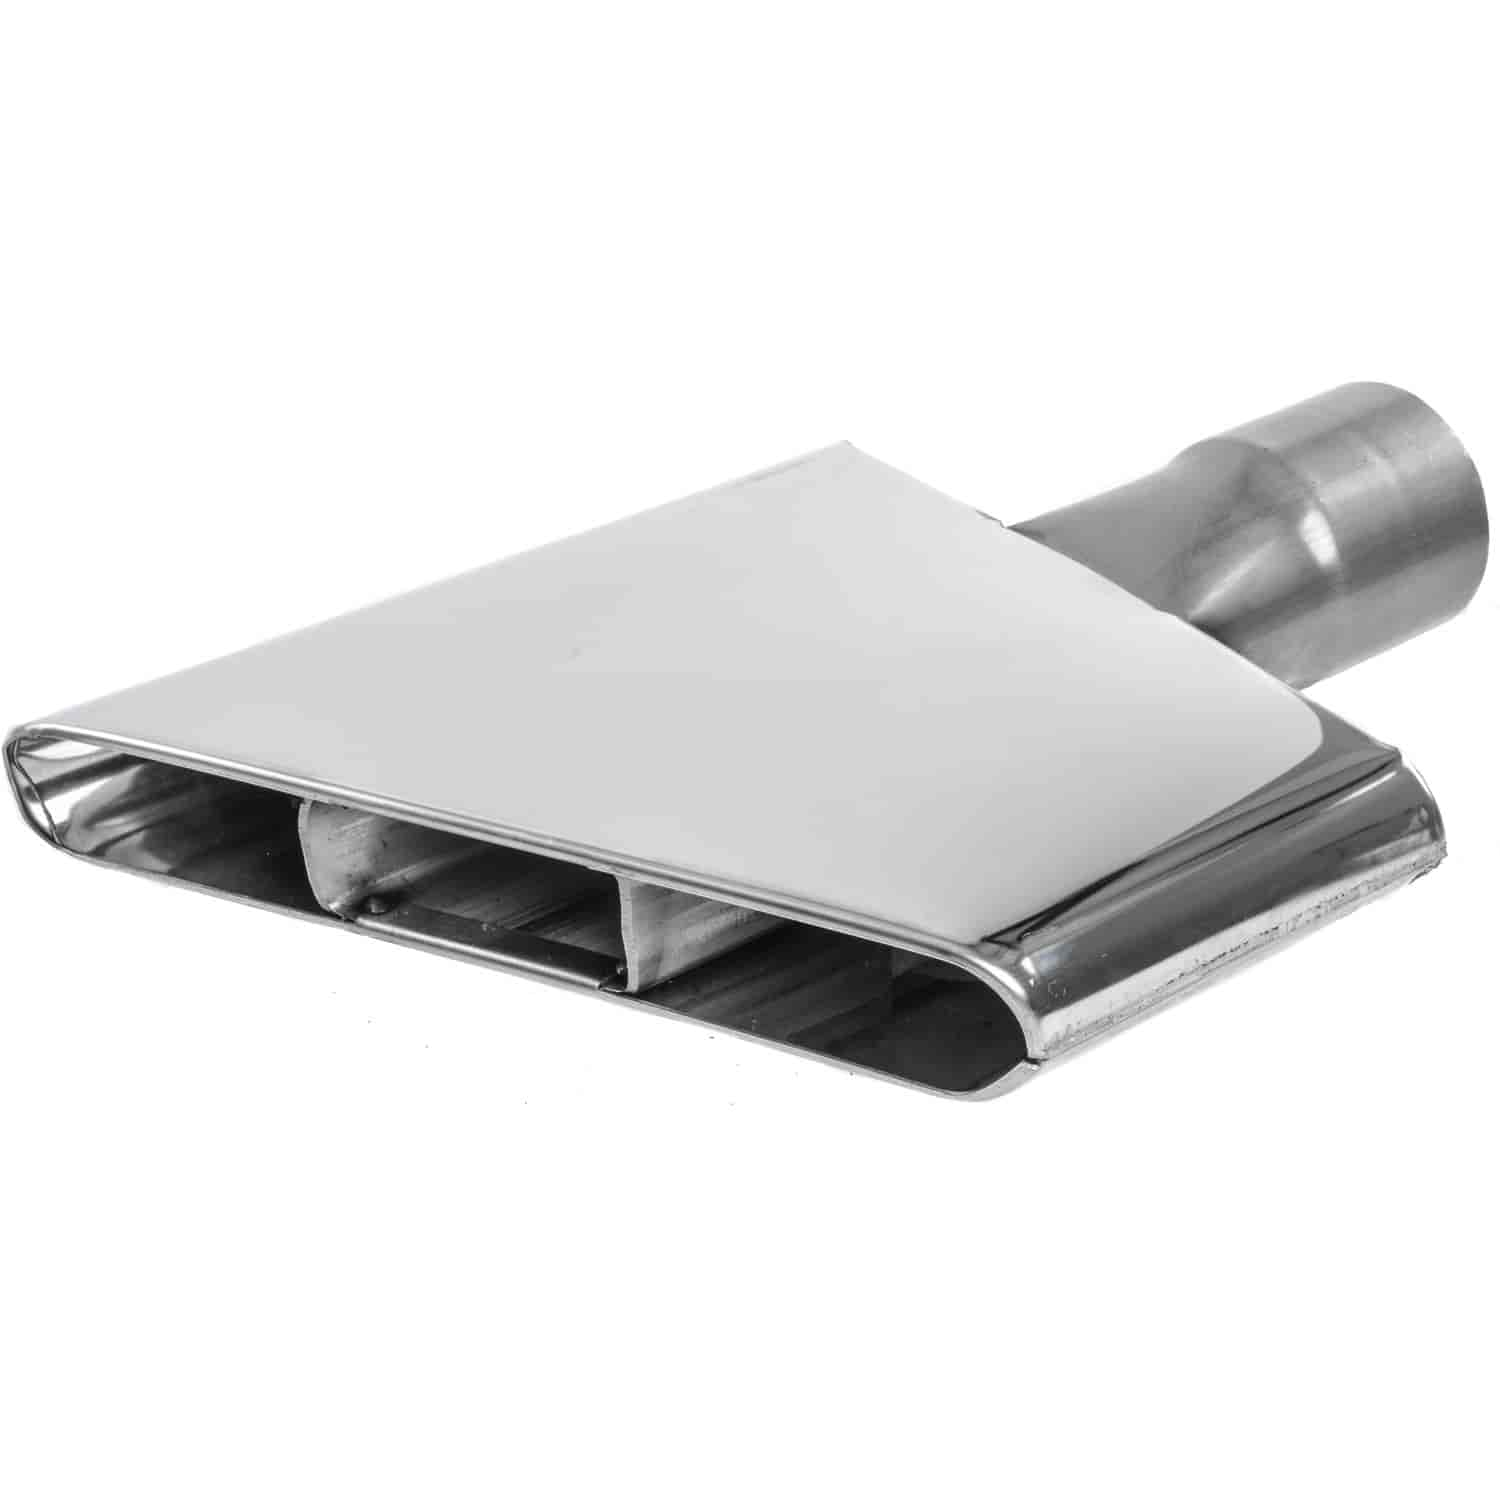 JEGS Performance Products 30970 - JEGS Thunder Exhaust Stainless Steel Exhaust Tips